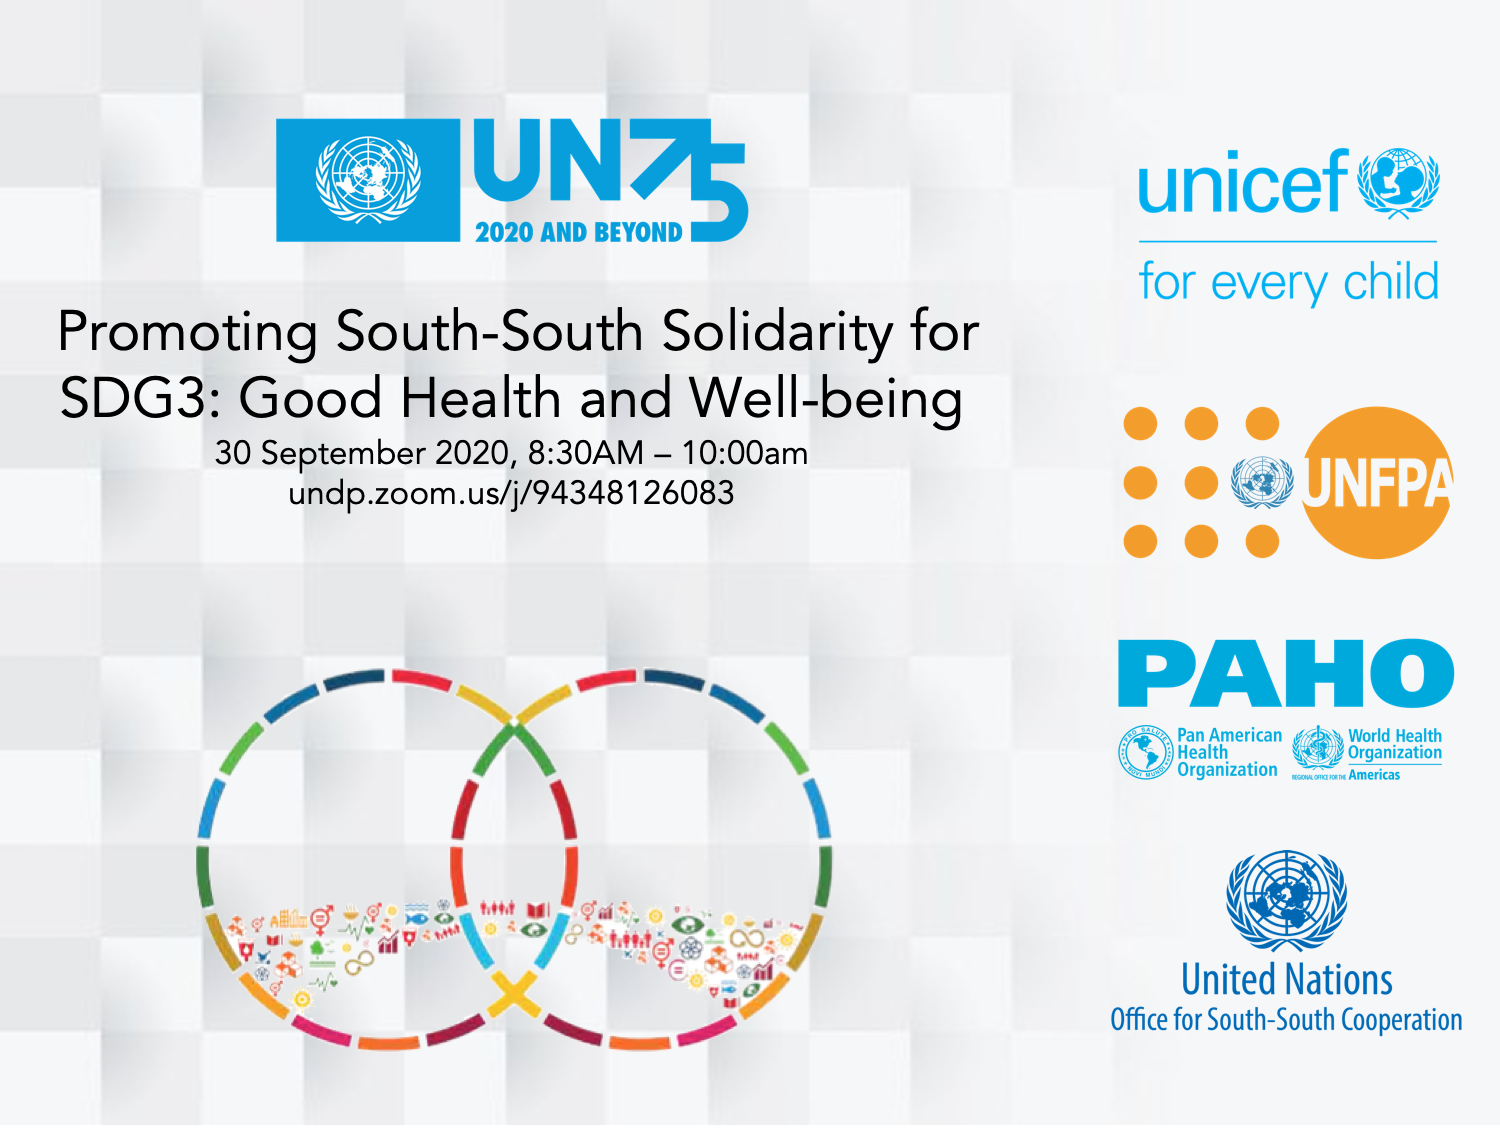 Promoting South-South Solidarity for SDG3: Good Health and Well-being